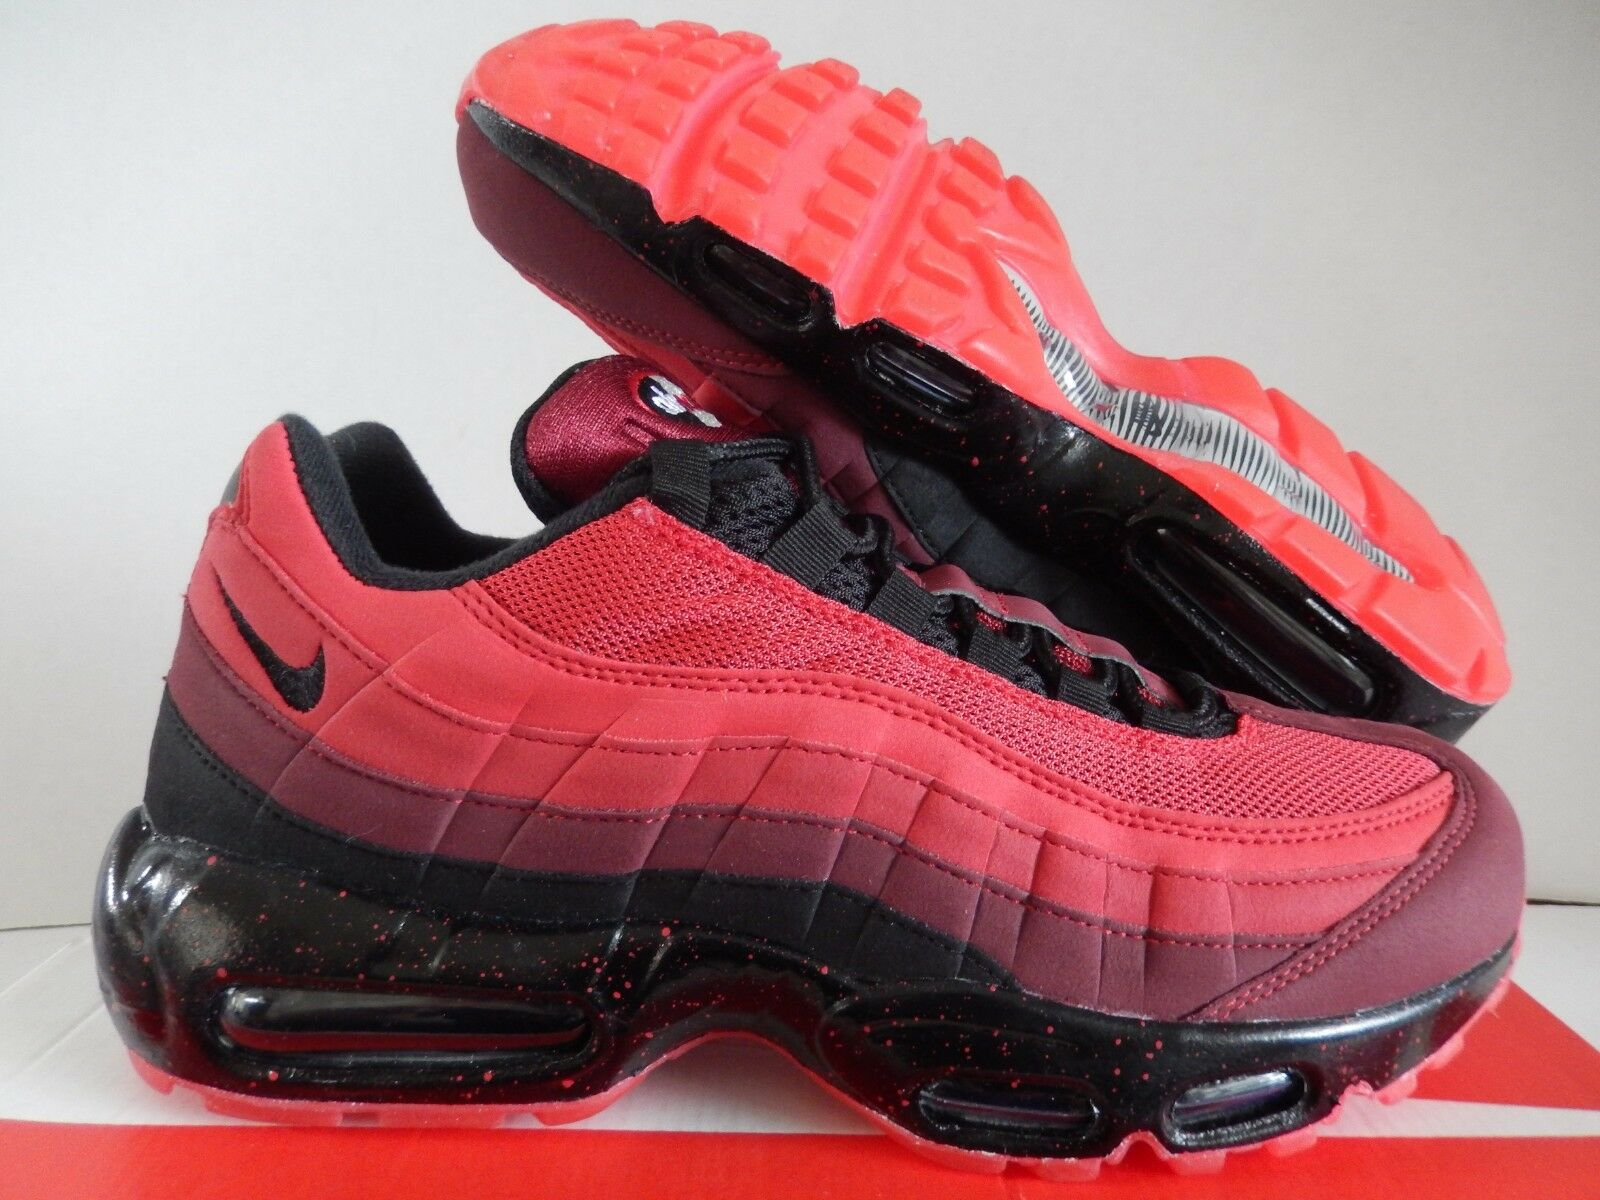 NIKE AIR MAX 95 ID RED-TEAM RED-BLACK SZ 9 [818592-996]